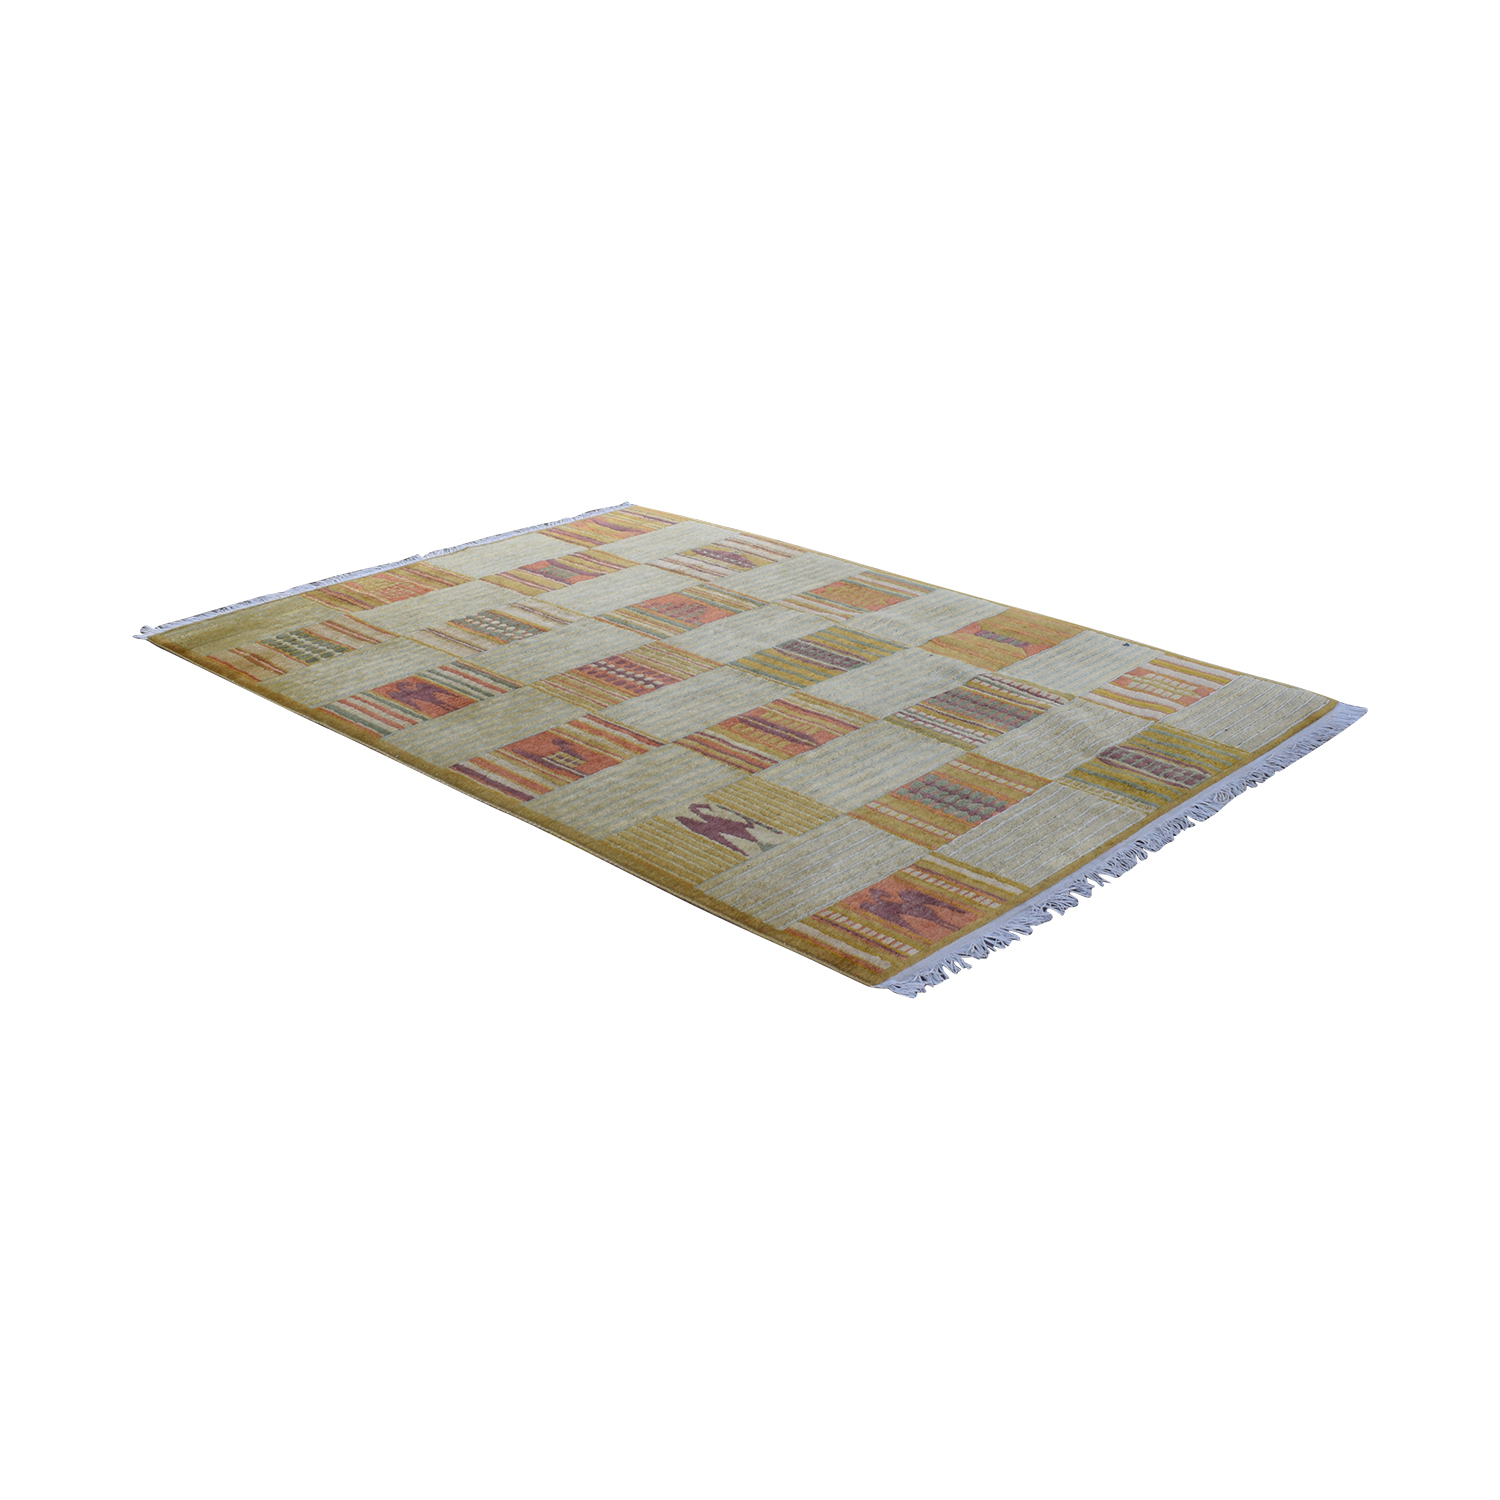 ABC Carpet & Home ABC Carpet & Home Hand-Knotted Wool Rug for sale